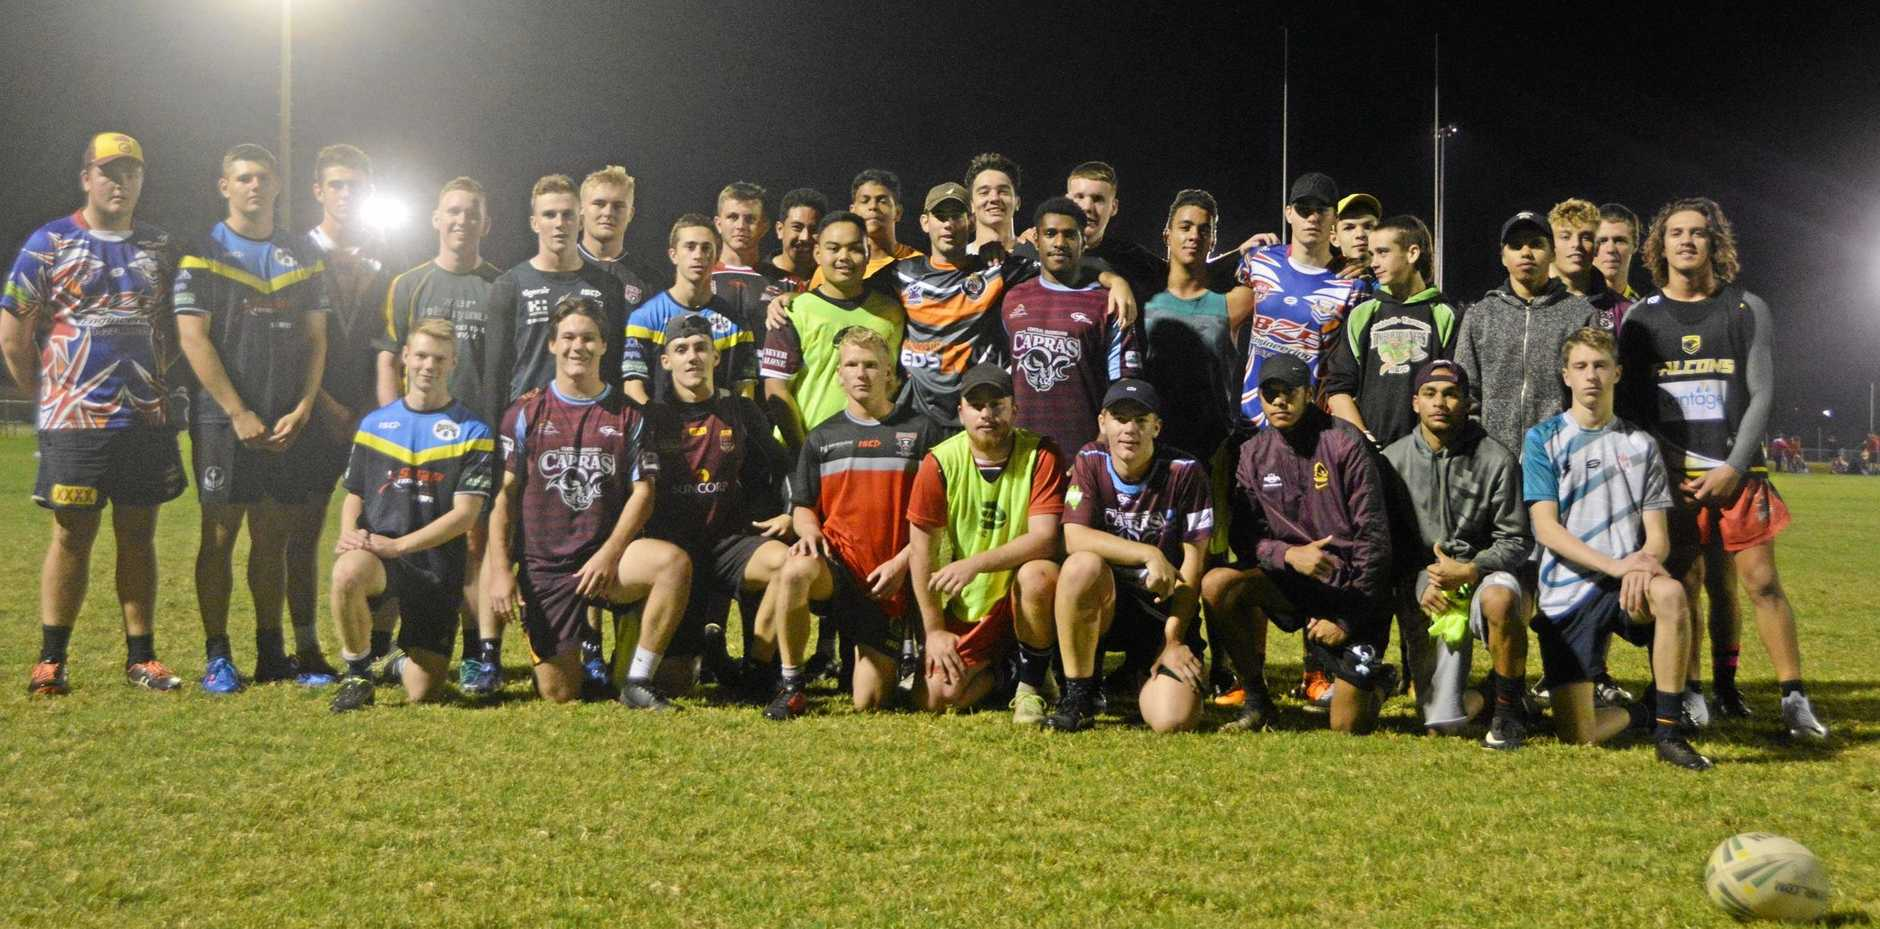 UP FOR THE CHALLENGE: The U18 Wide Bay Schoolboys take on the South Burnett U18s to prepare for the state championships.